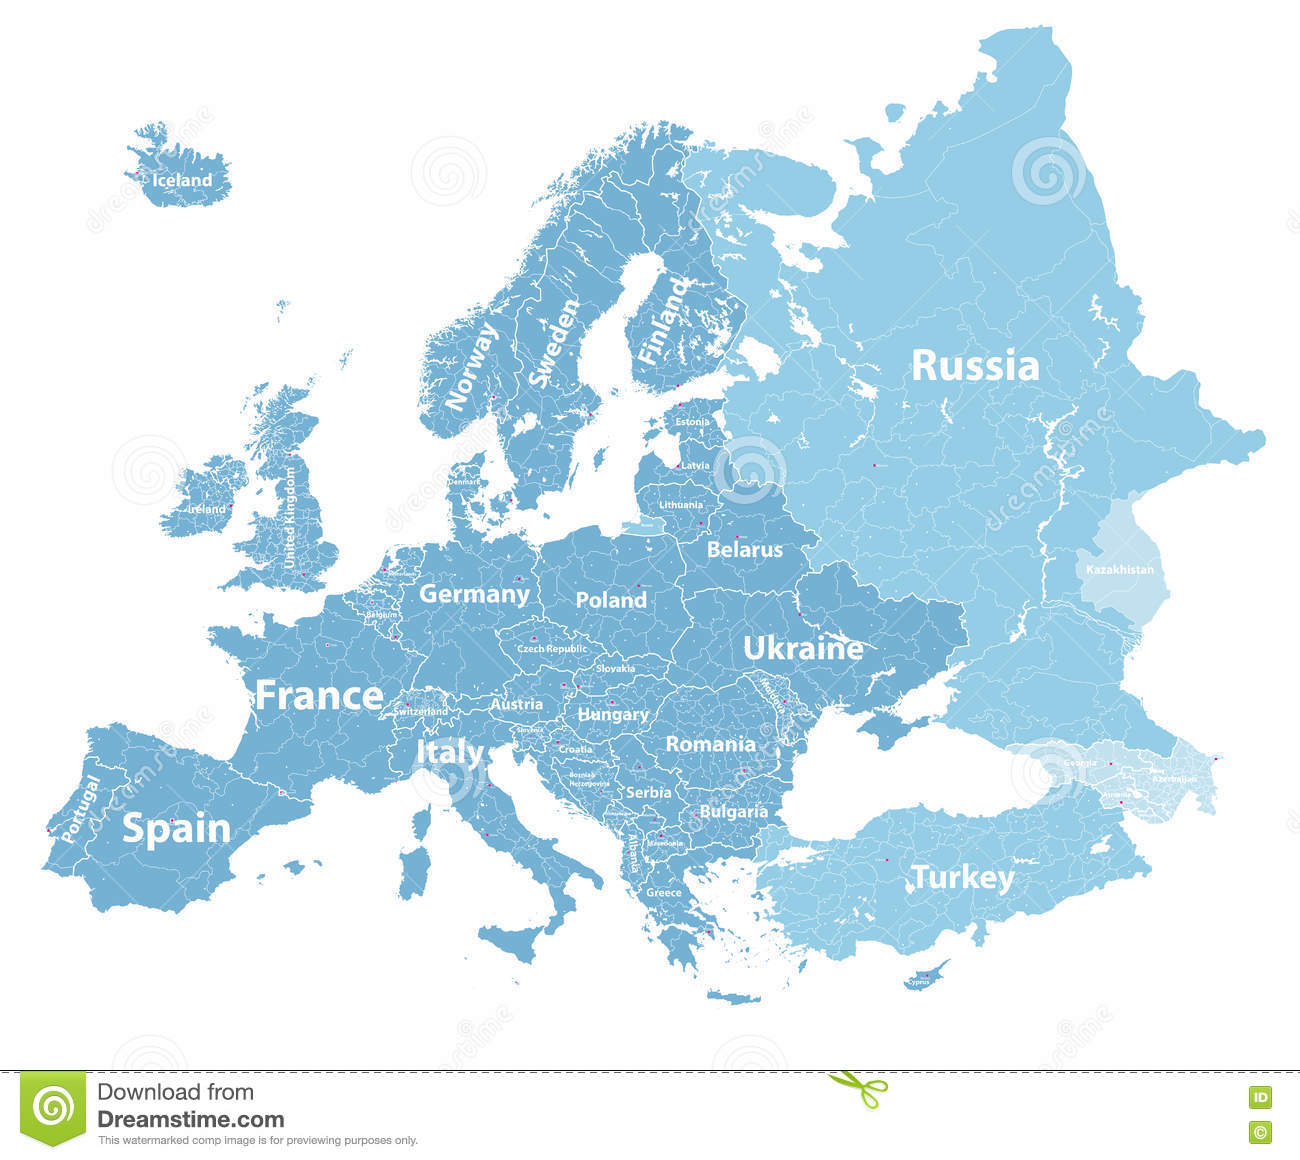 Europe Vector High Detailed Political Map With Regions Borders And - World political map with country names